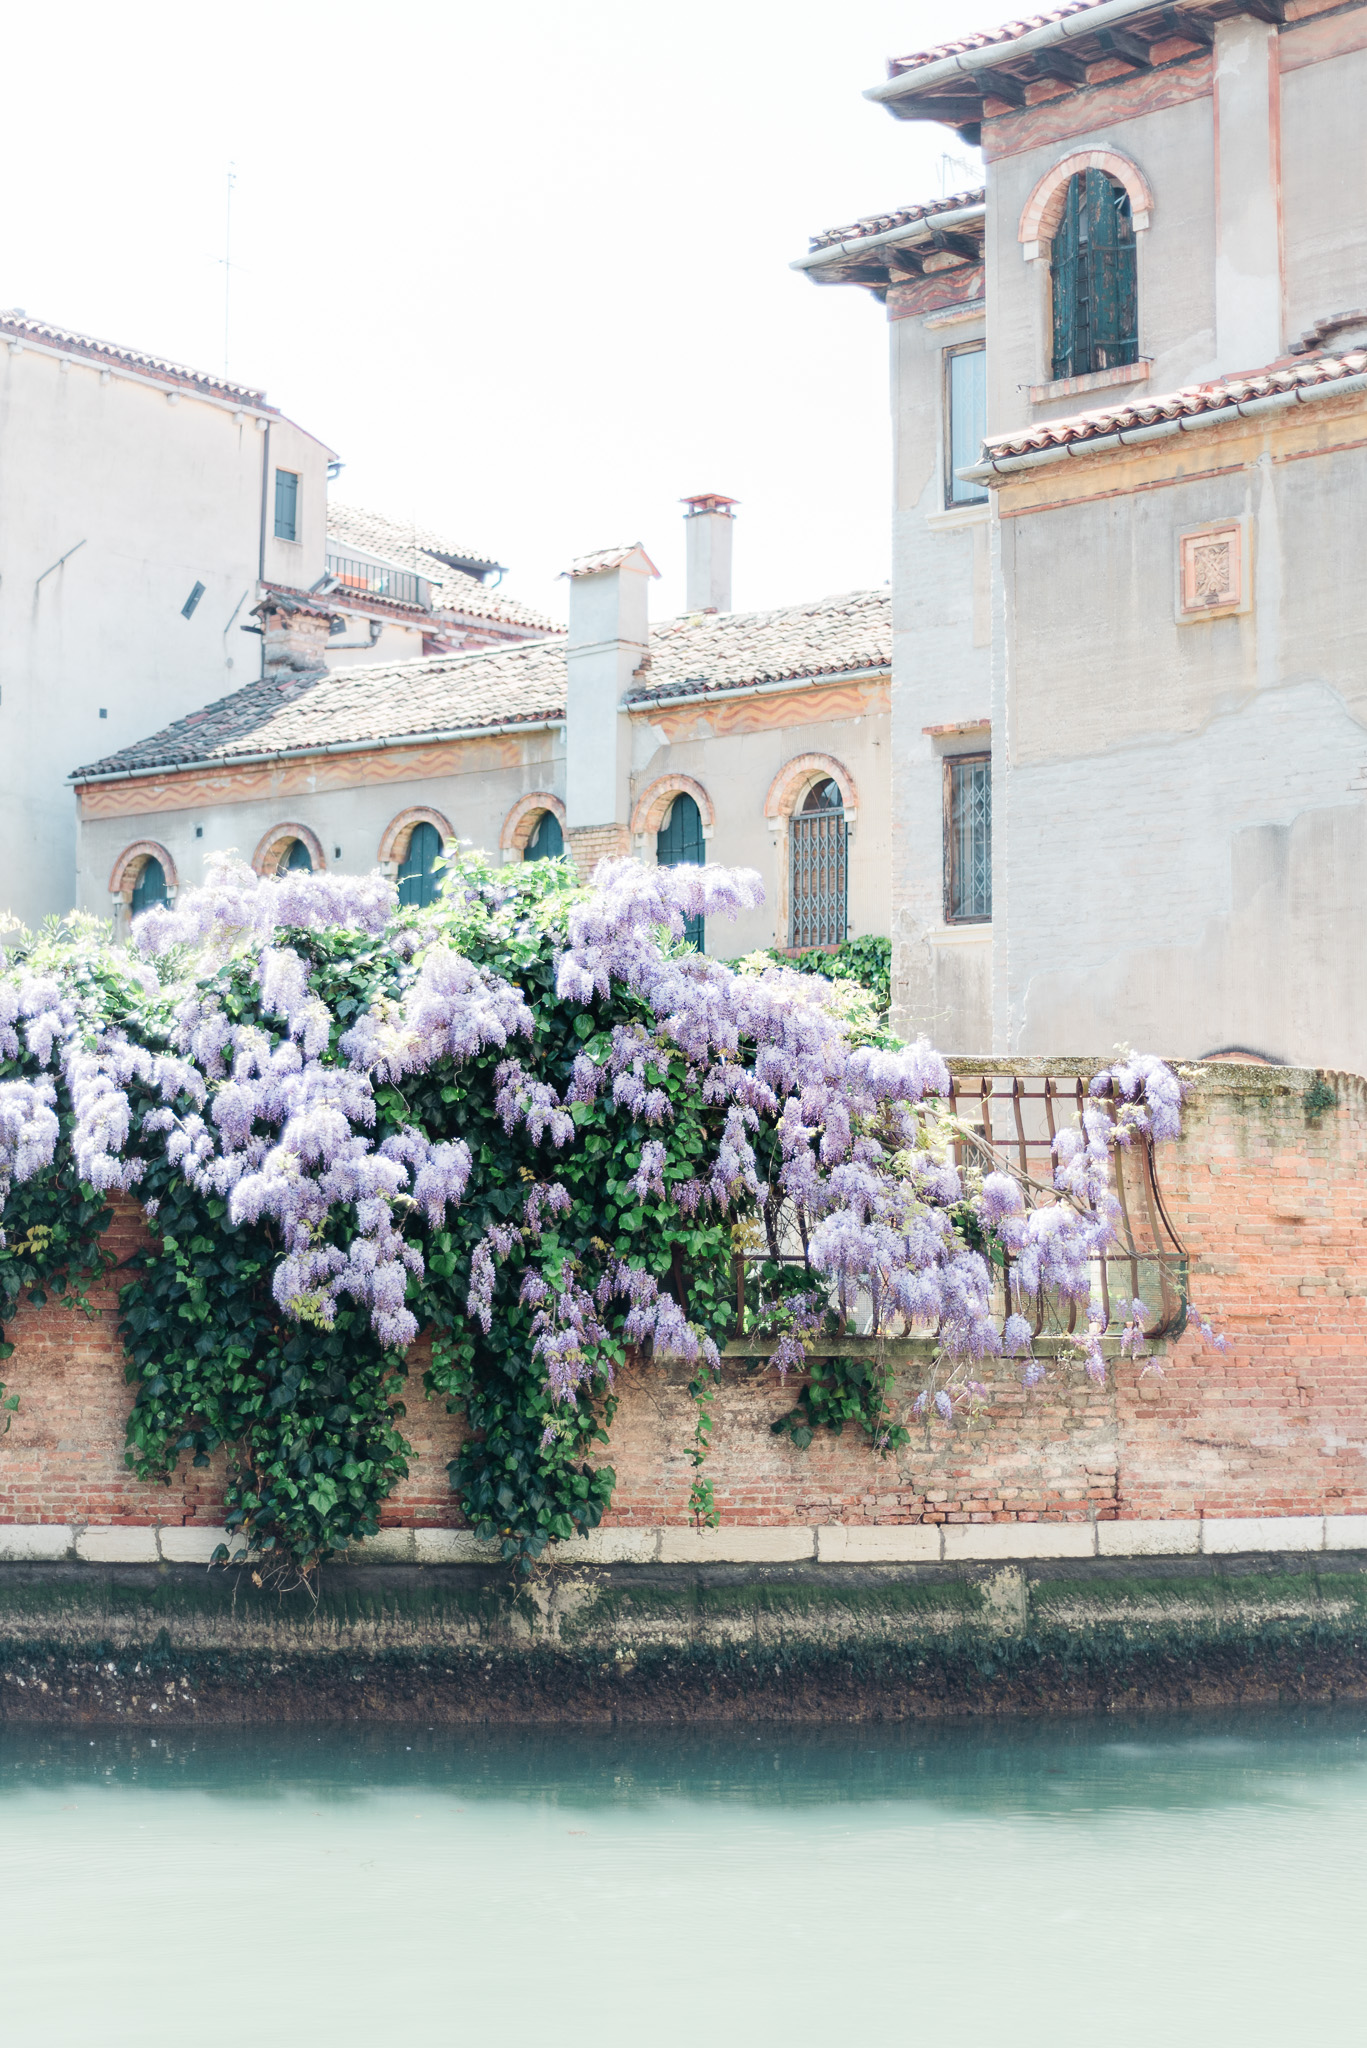 Wisteria hanging over canals in Venice | Two Weeks in Italy by Jenn Kavanagh Photography